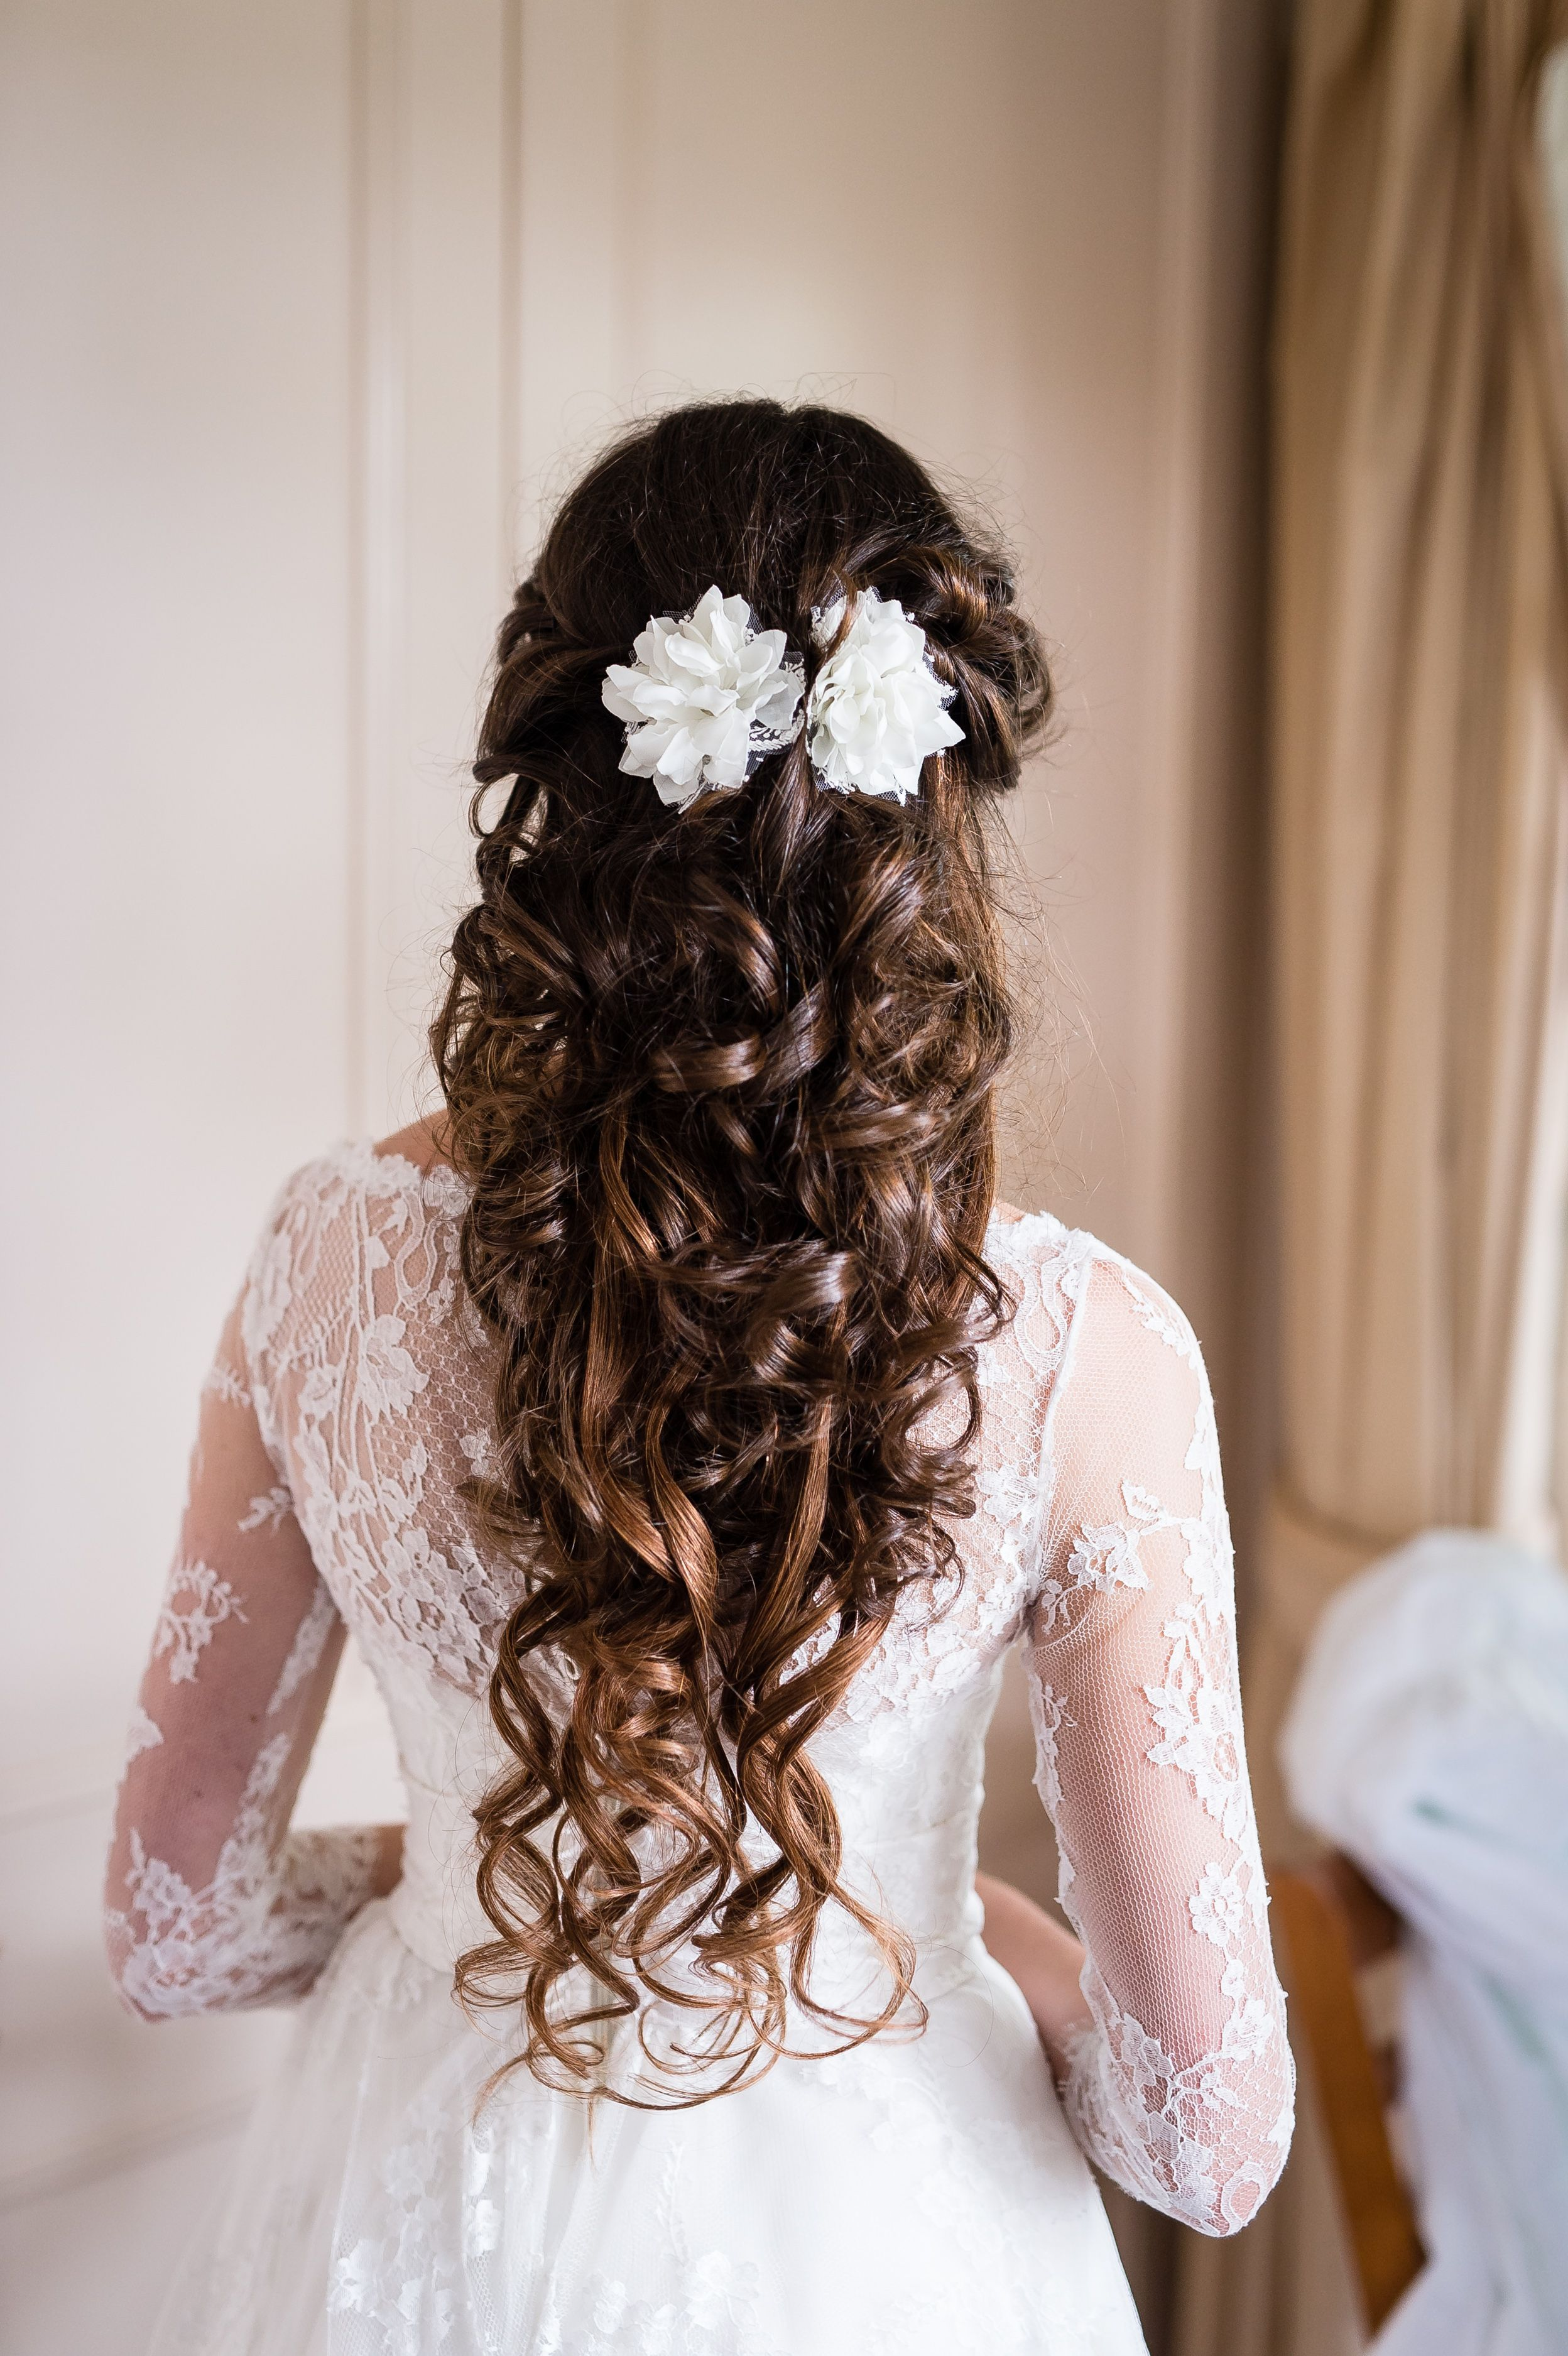 Our Blooming Bride Wearing Flower Hair Clips With Vintage Lace